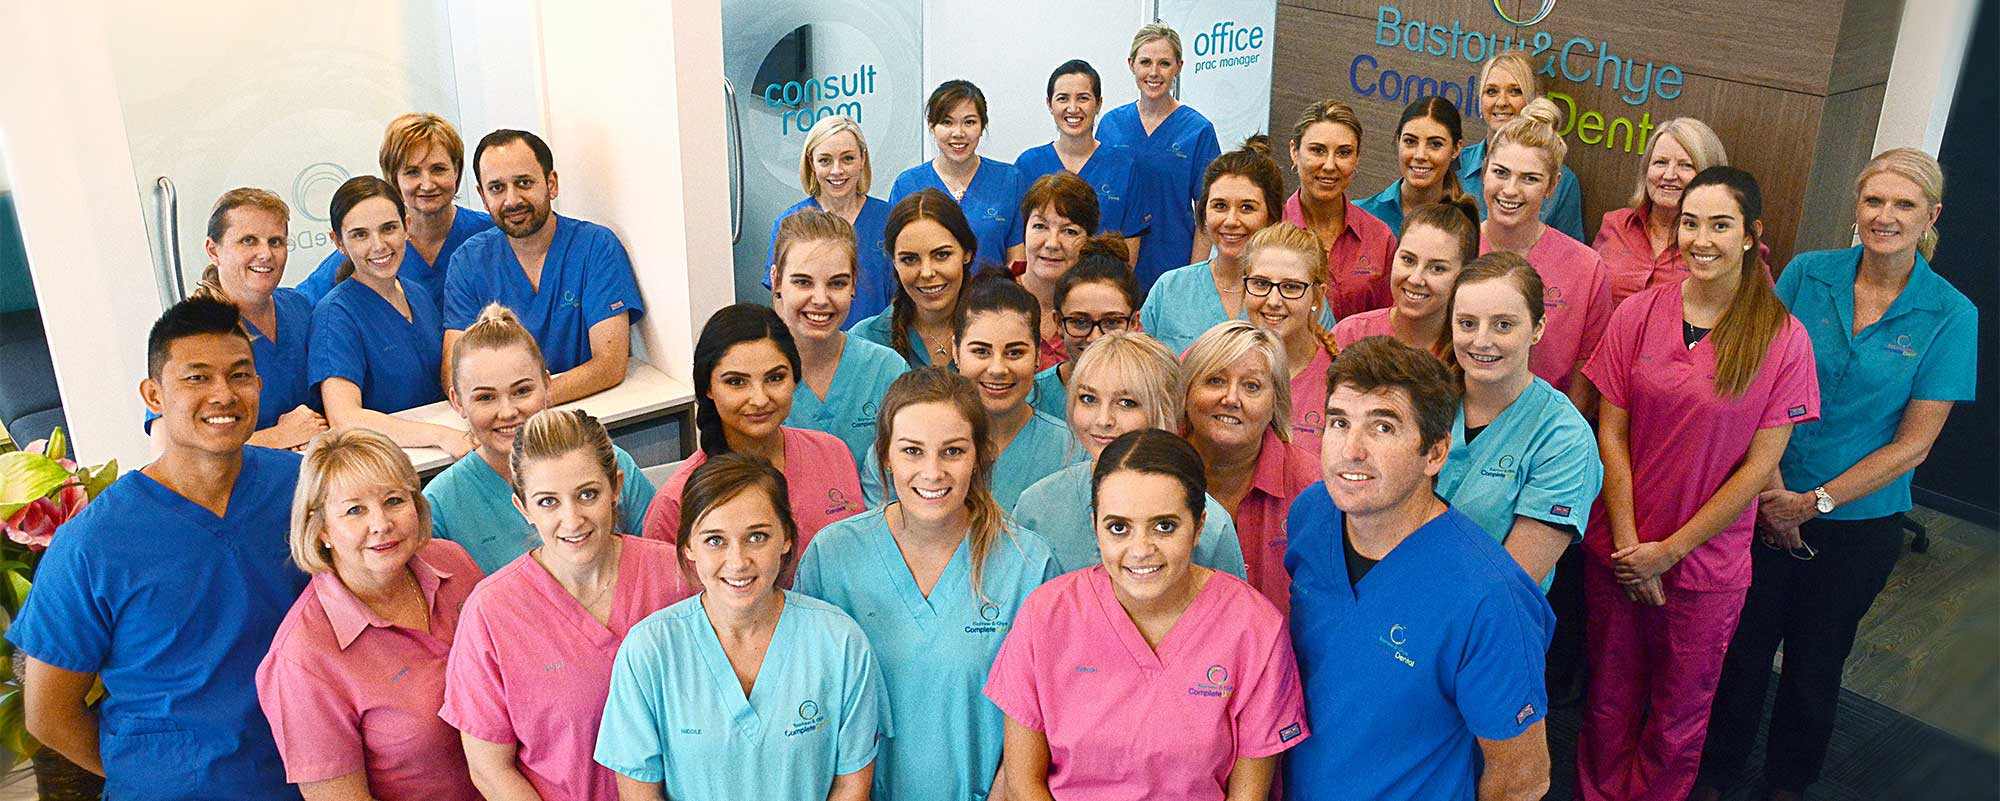 complete-dental-all-staff